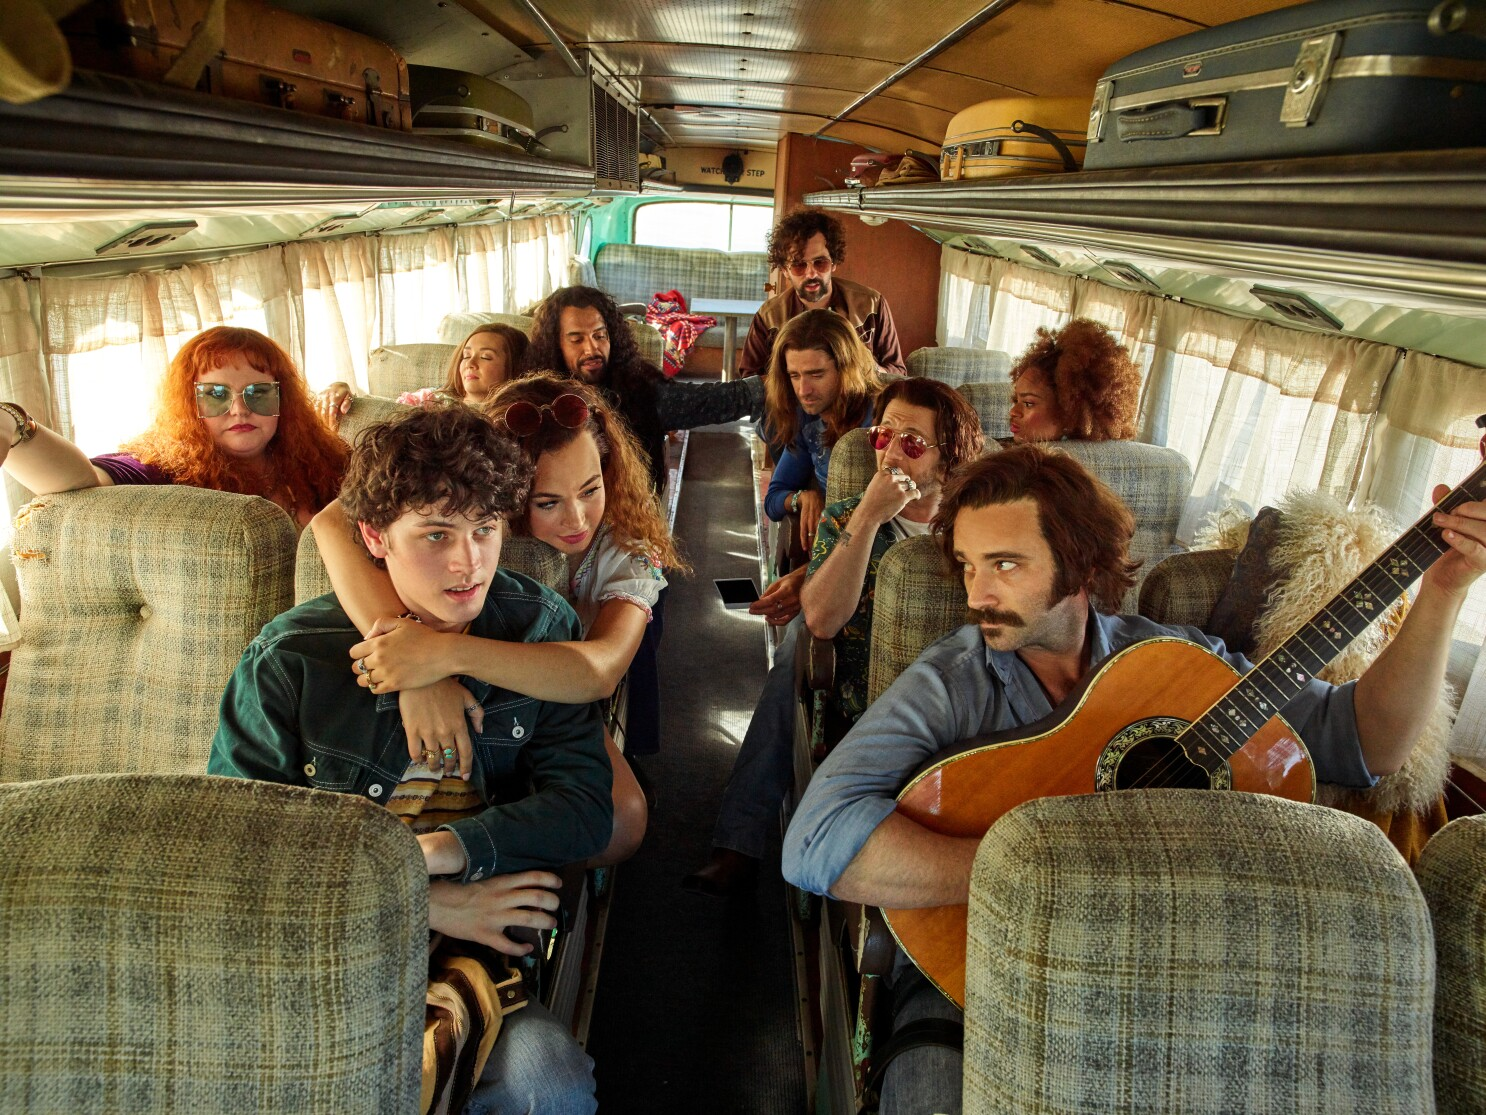 Cameron Crowe resurrects 'Almost Famous' as a stage musical - Los ...